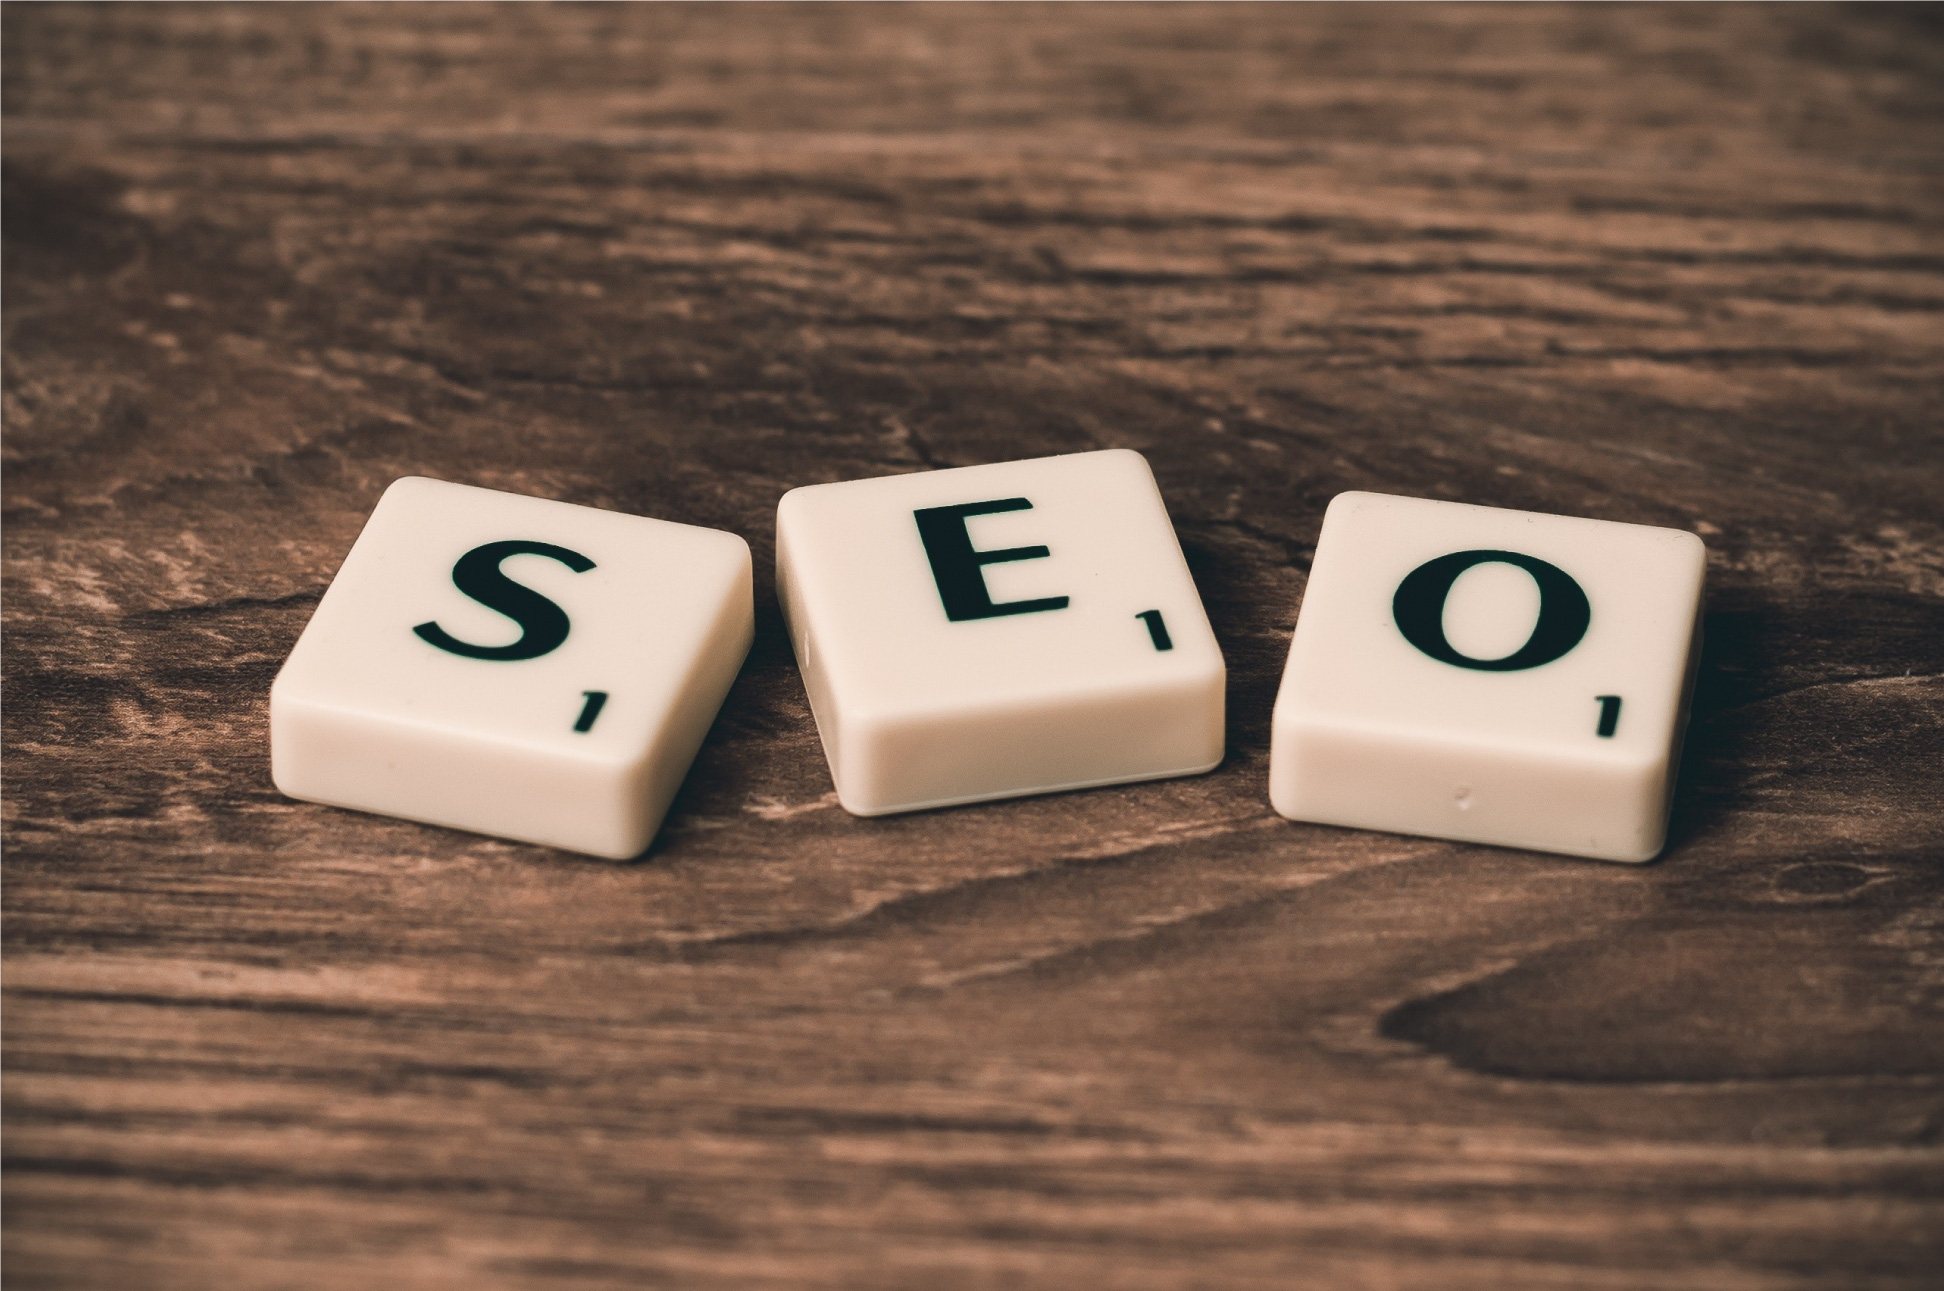 5 SEO Strategies Every Marketer Should Know